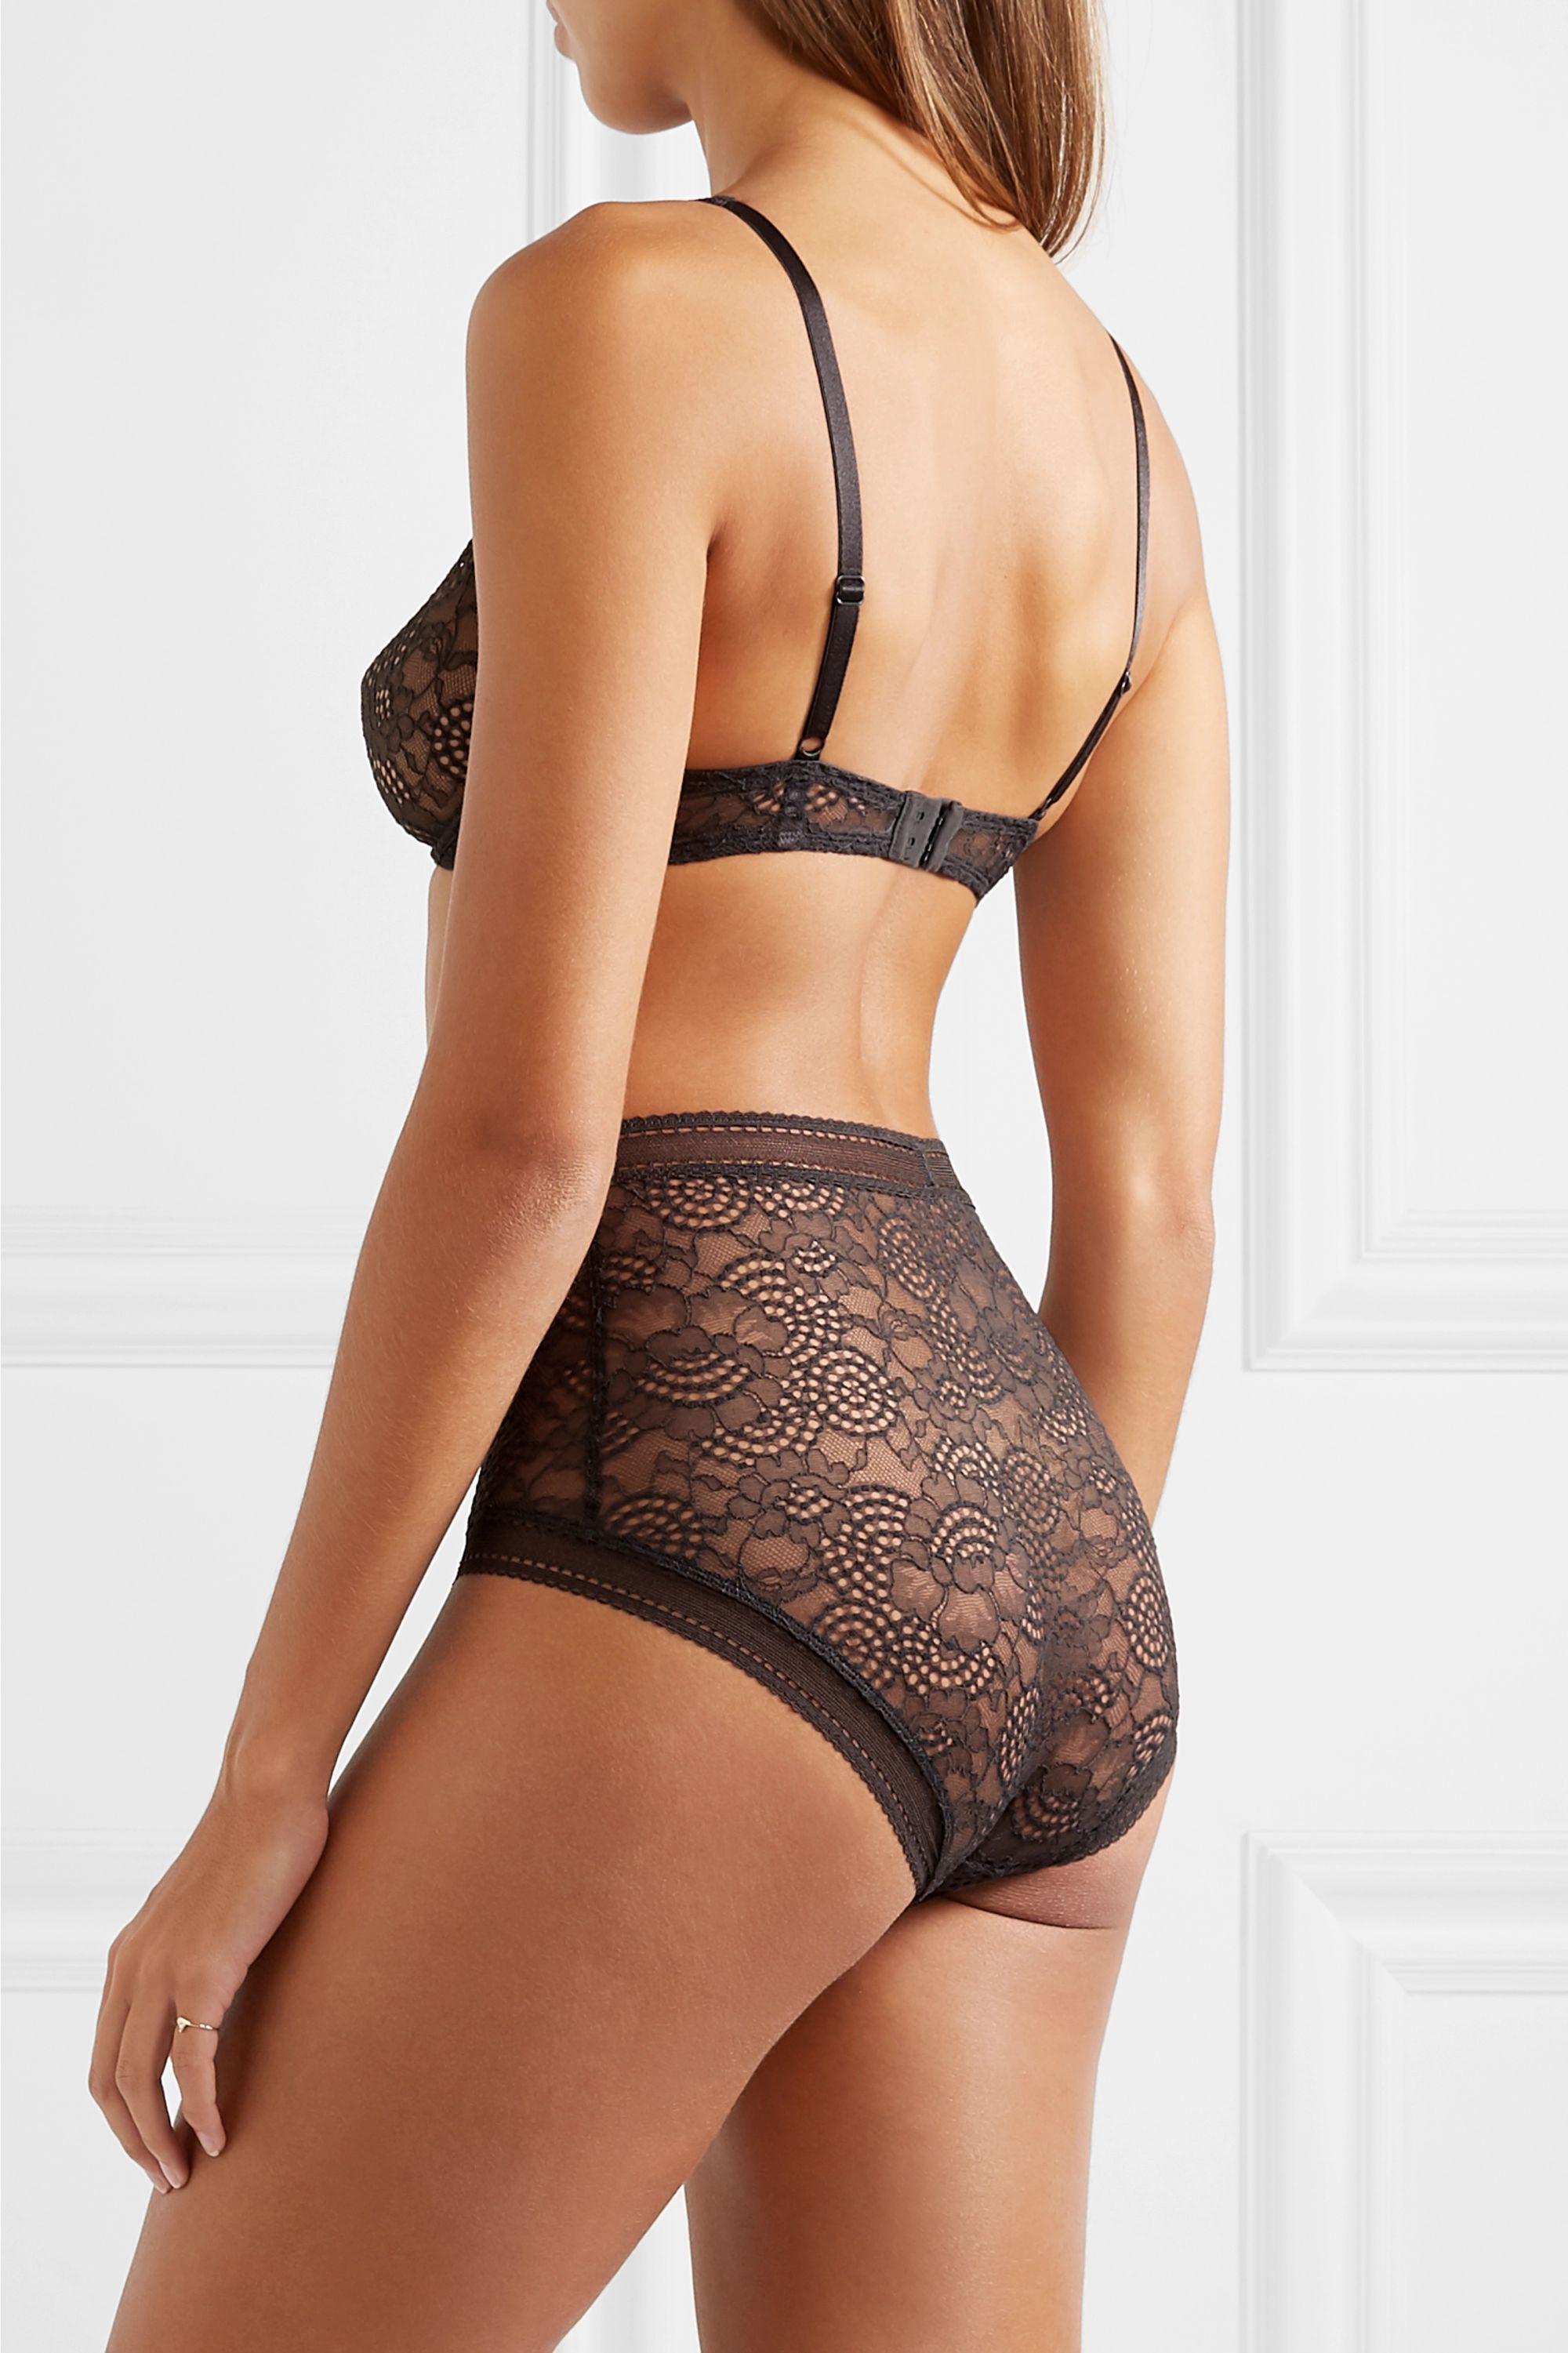 Anthracite Belle De Nuit Chagrin Stretch-lace Soft-cup Triangle Bra | Eres